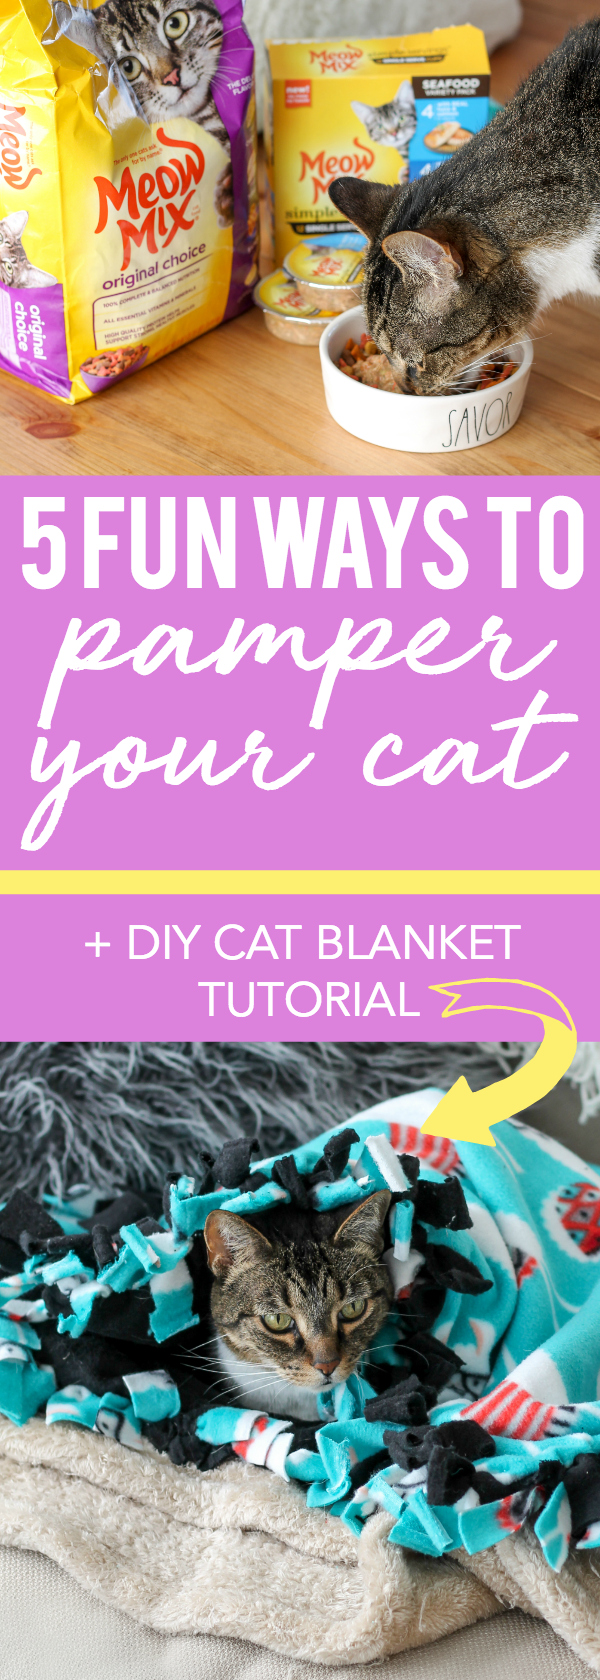 5 Fun Ways to Pamper Your Cat